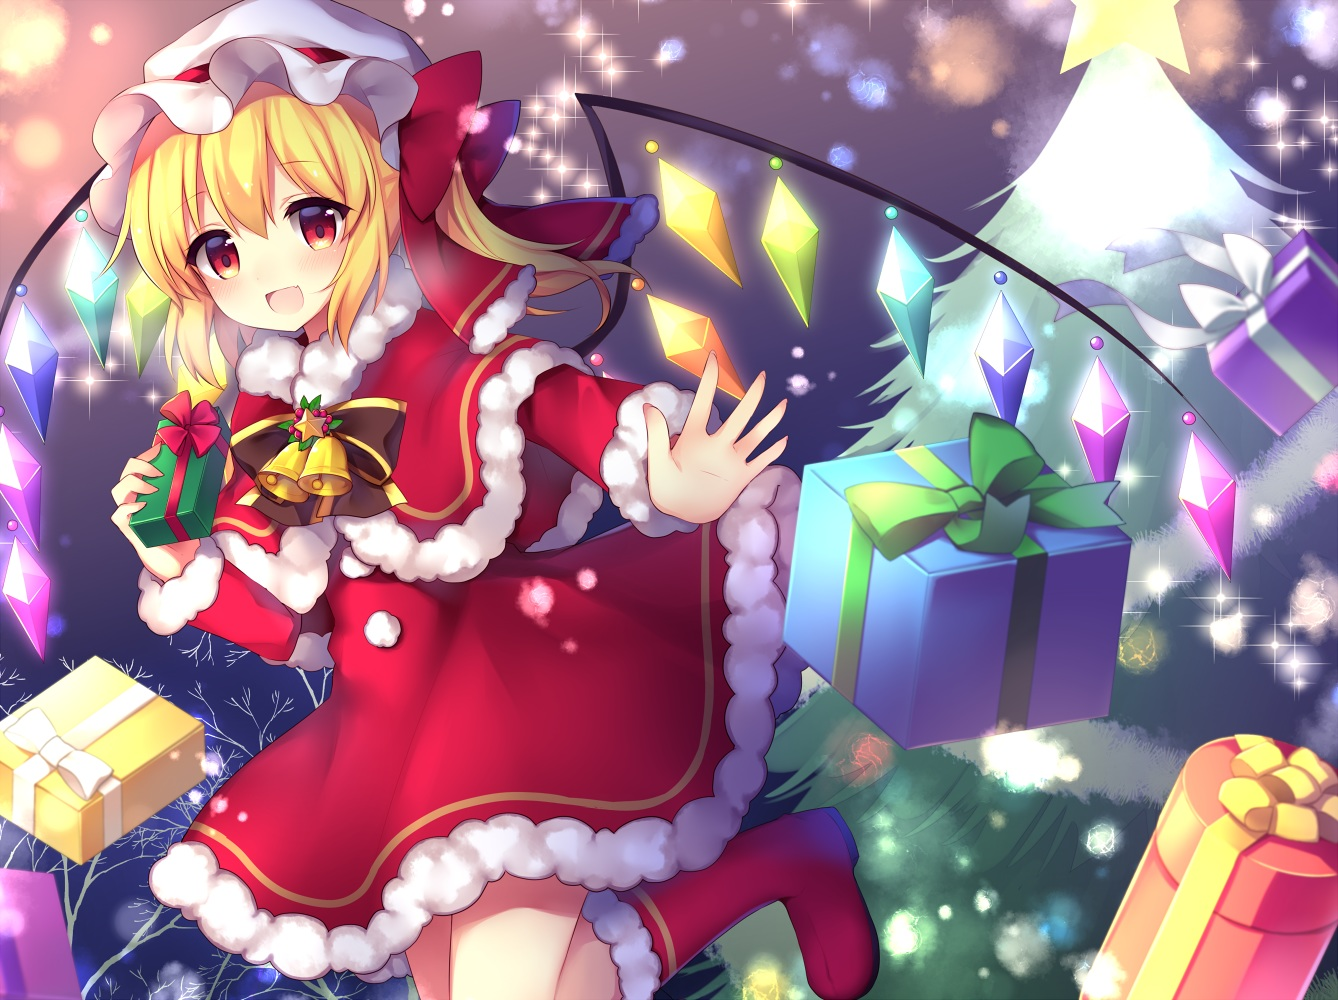 bell blonde_hair boots bow cape christmas dress flandre_scarlet hat ponytail red_eyes ruhika santa_costume touhou tree vampire wings